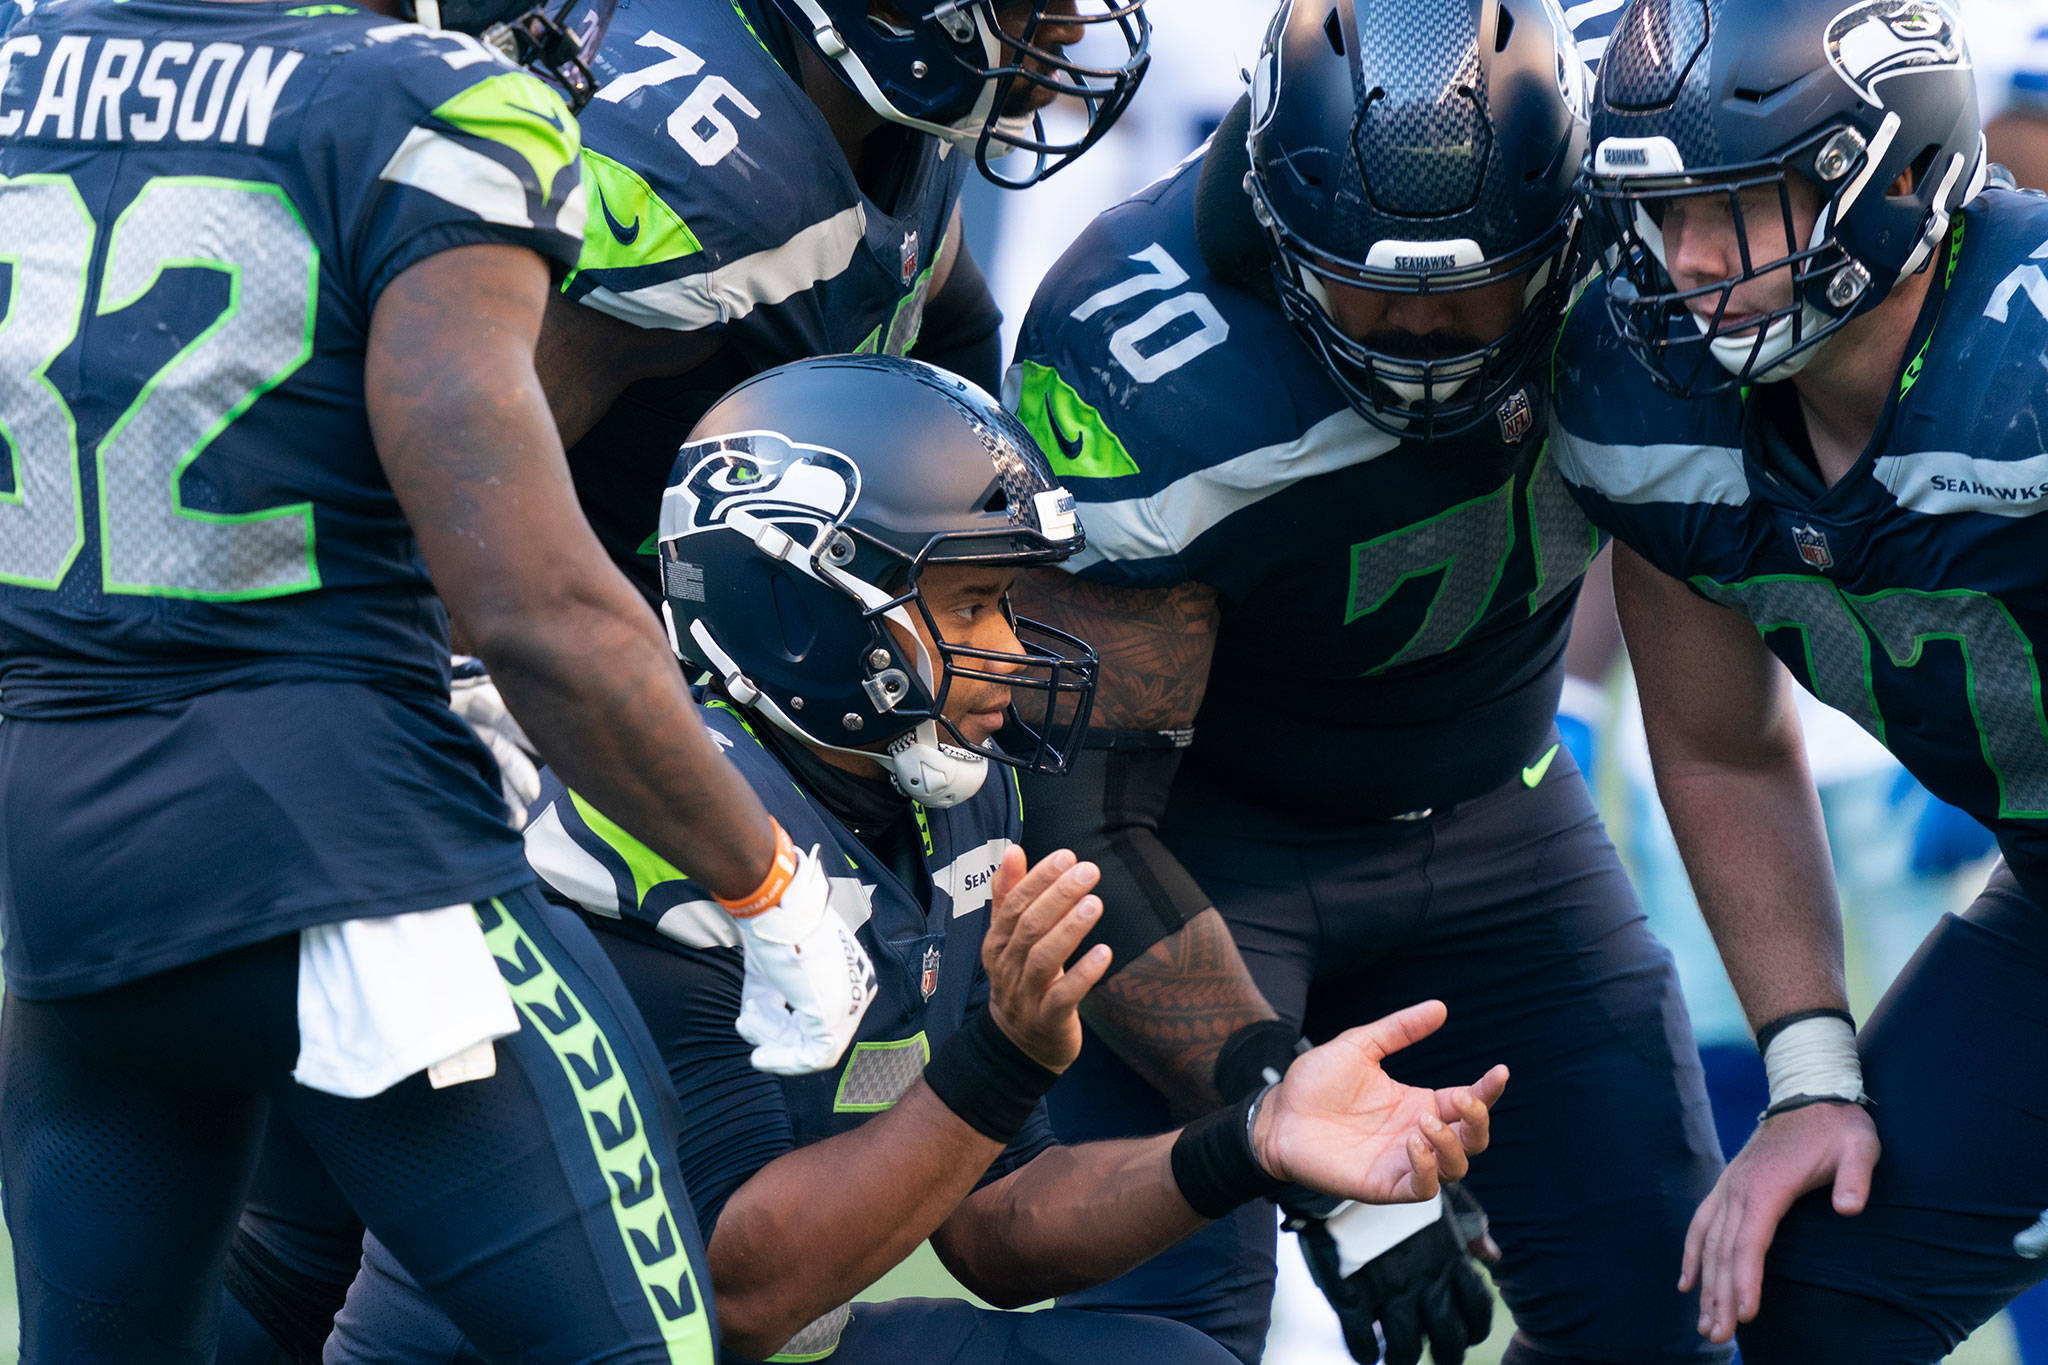 Seahawks quarterback Russell Wilson breaks the huddle during the second half of a game against the Cowboys on Sept. 27, 2020, in Seattle. (AP Photo/Stephen Brashear)